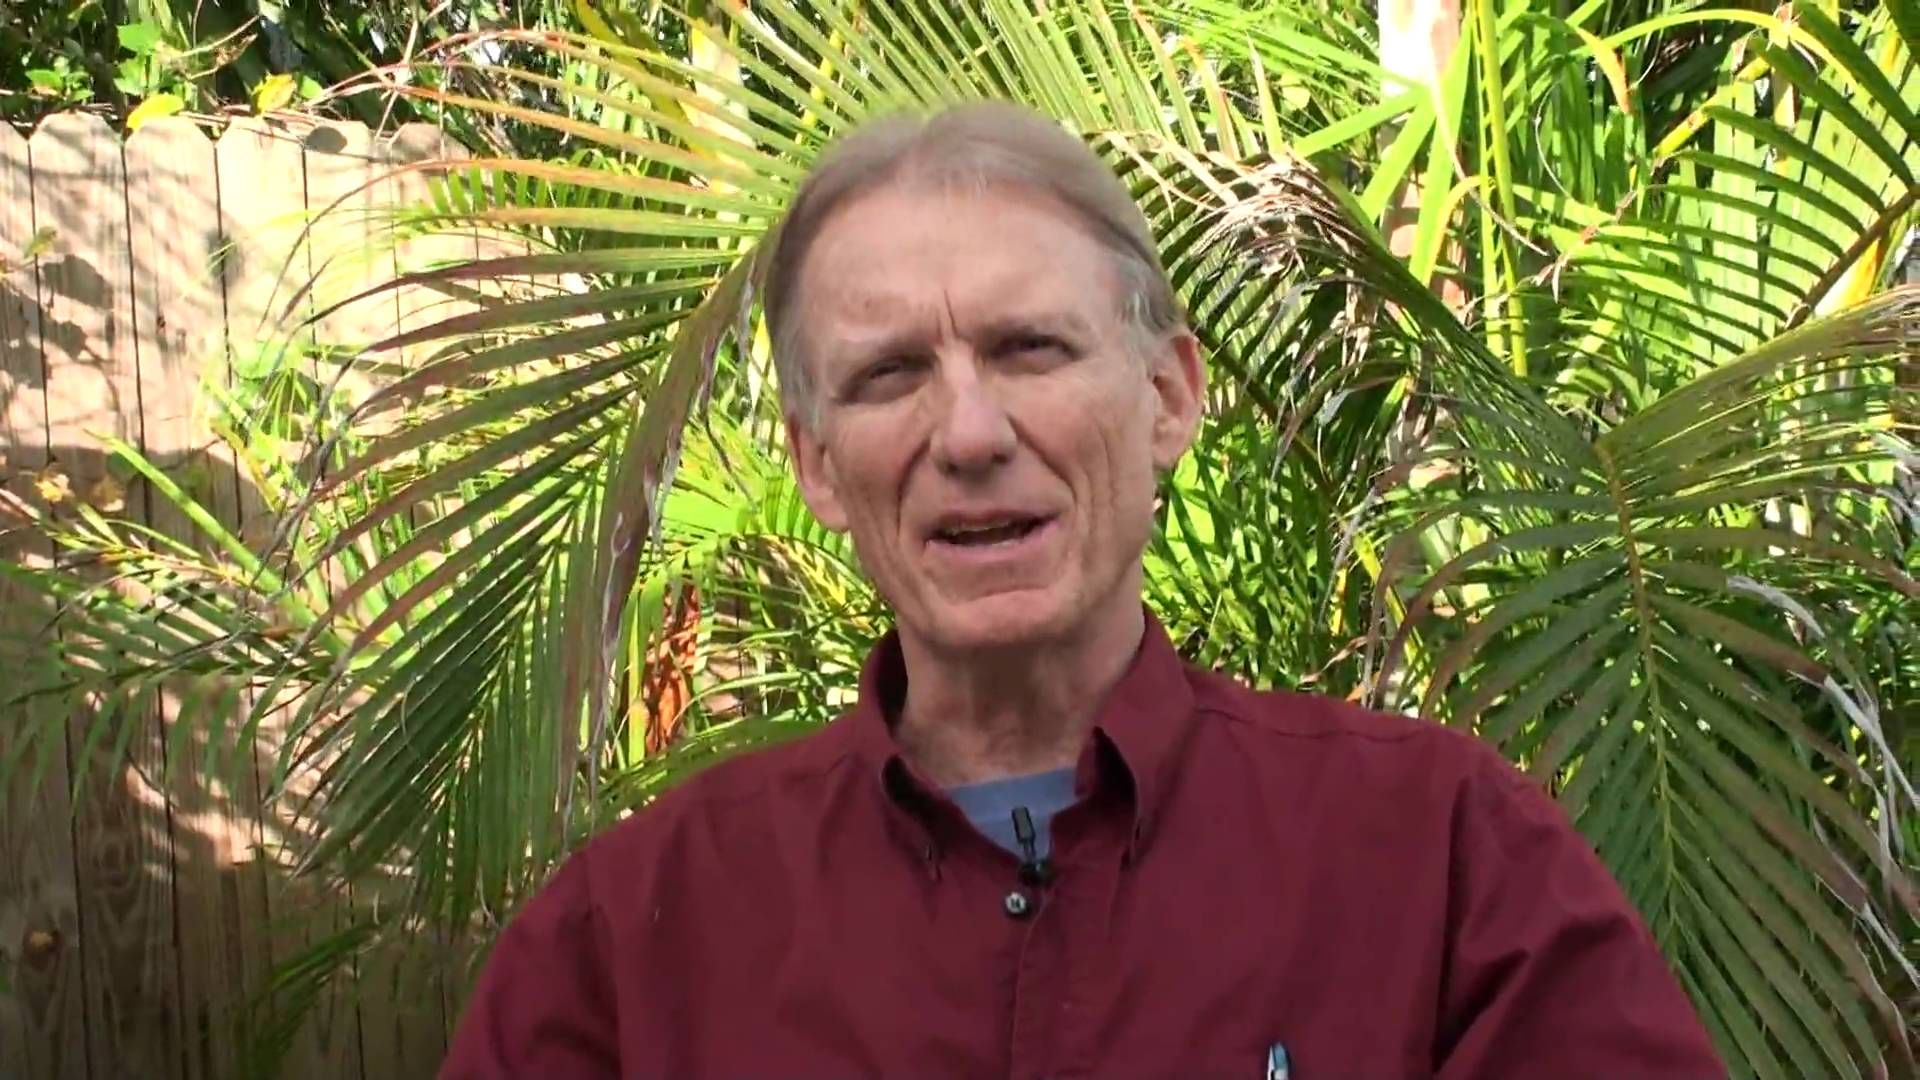 What is the therapeutic relationship in biodynamic practice? Part 1, with Dr. Michael Shea